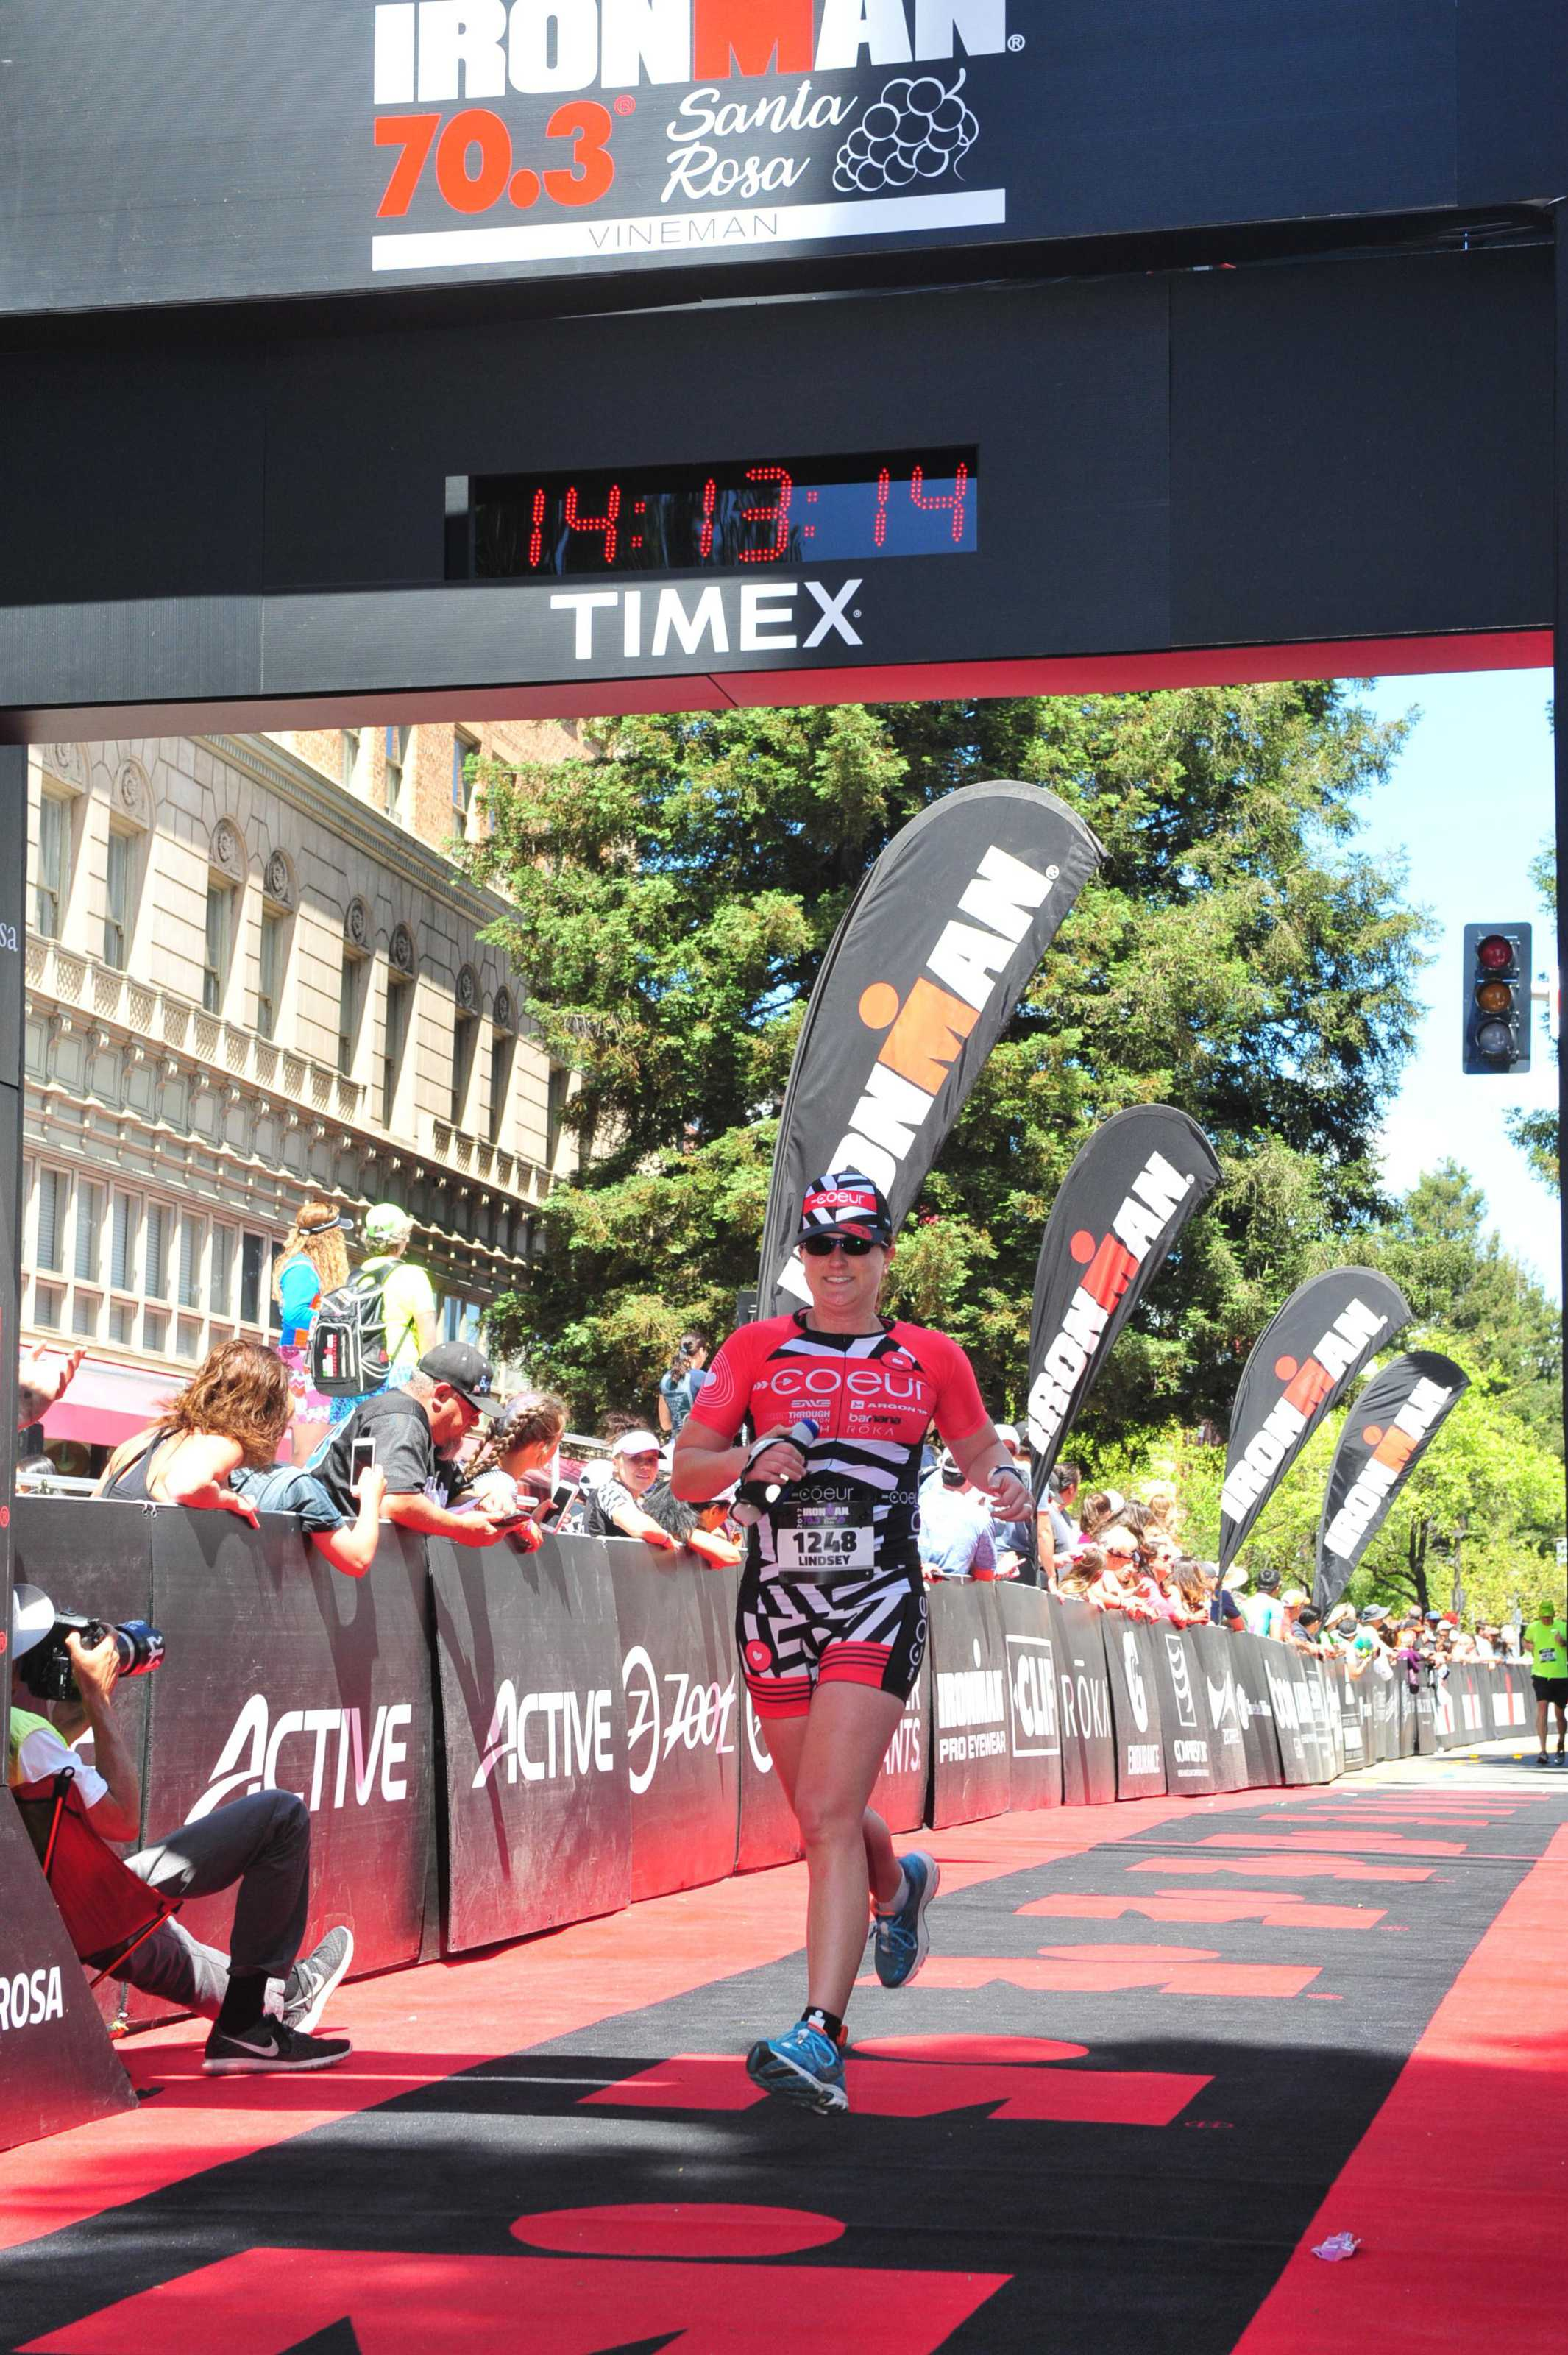 Ironman Santa Rosa 70.3 2017 Race Report – Finish & Afterthoughts